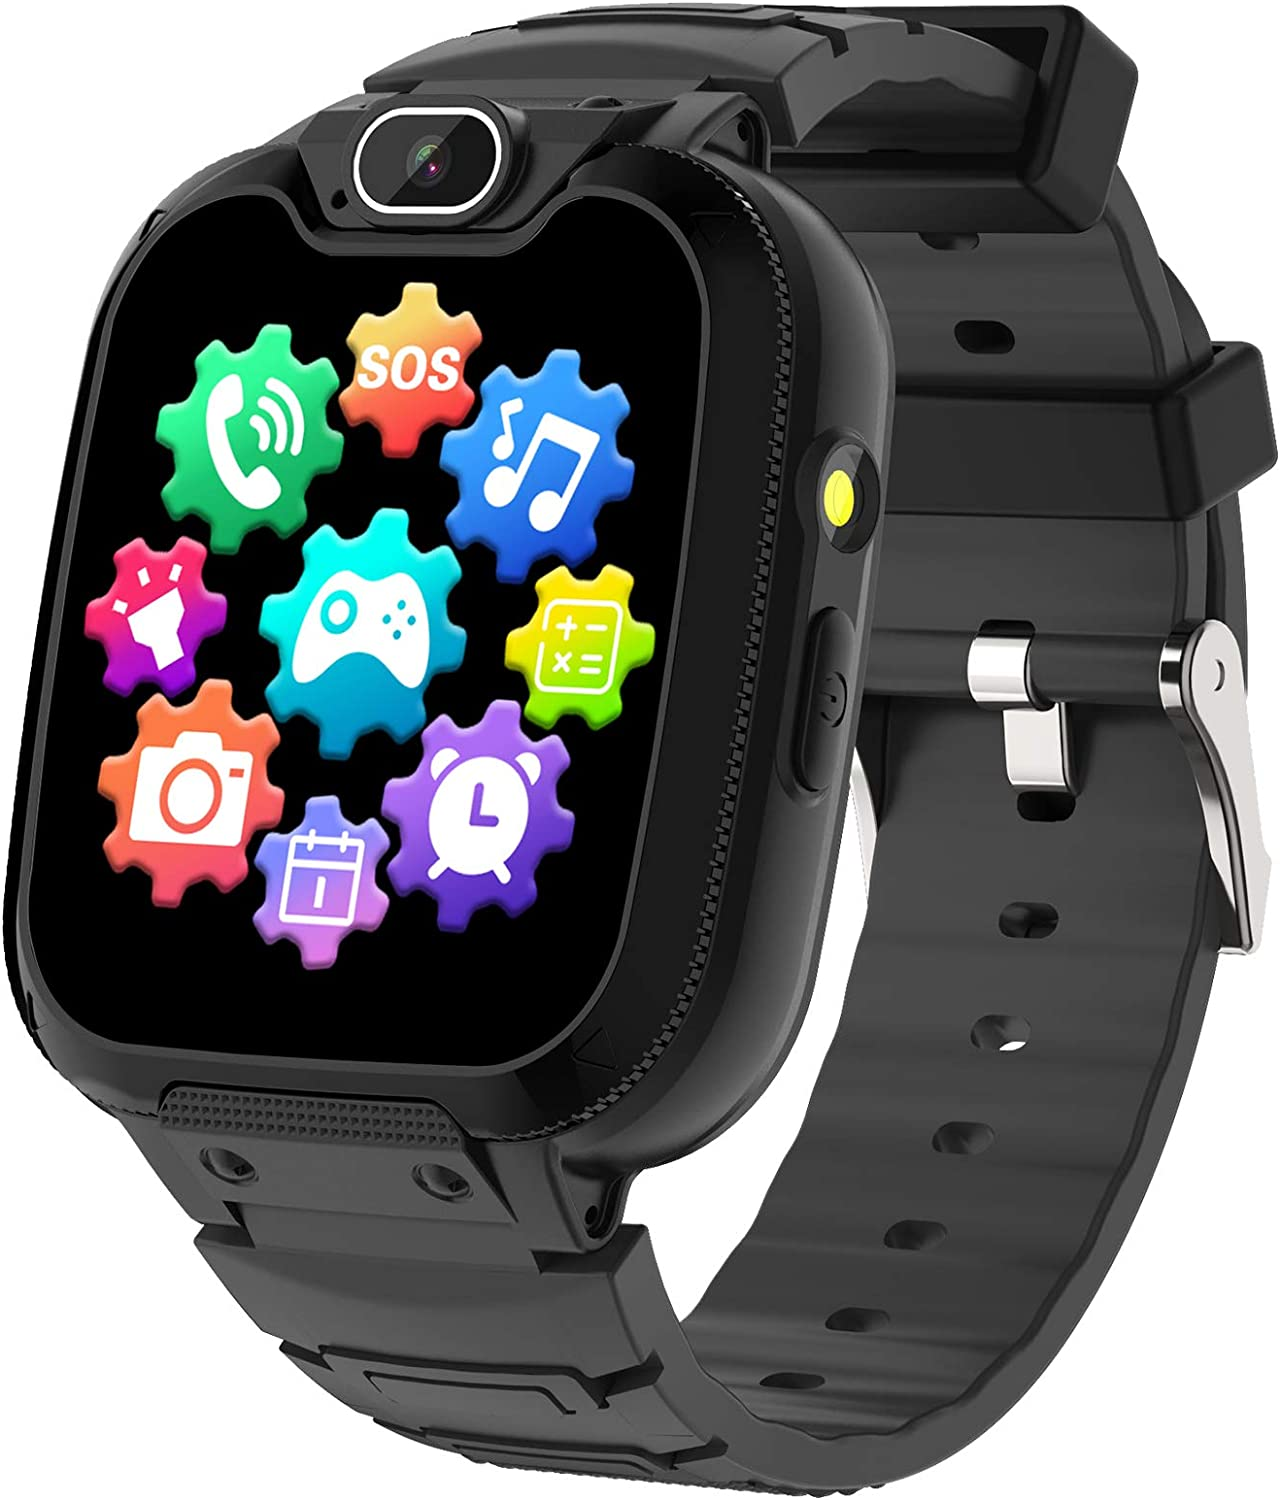 Kids Smart Watch for Boys Girls - Kids Phone Smartwatch with Calls 14 Games S0S Camera Video Music Player Clock Calculator Flashlight Touch Screen Children Smart Watch Gifts for Kids Age 4-12 (Black)